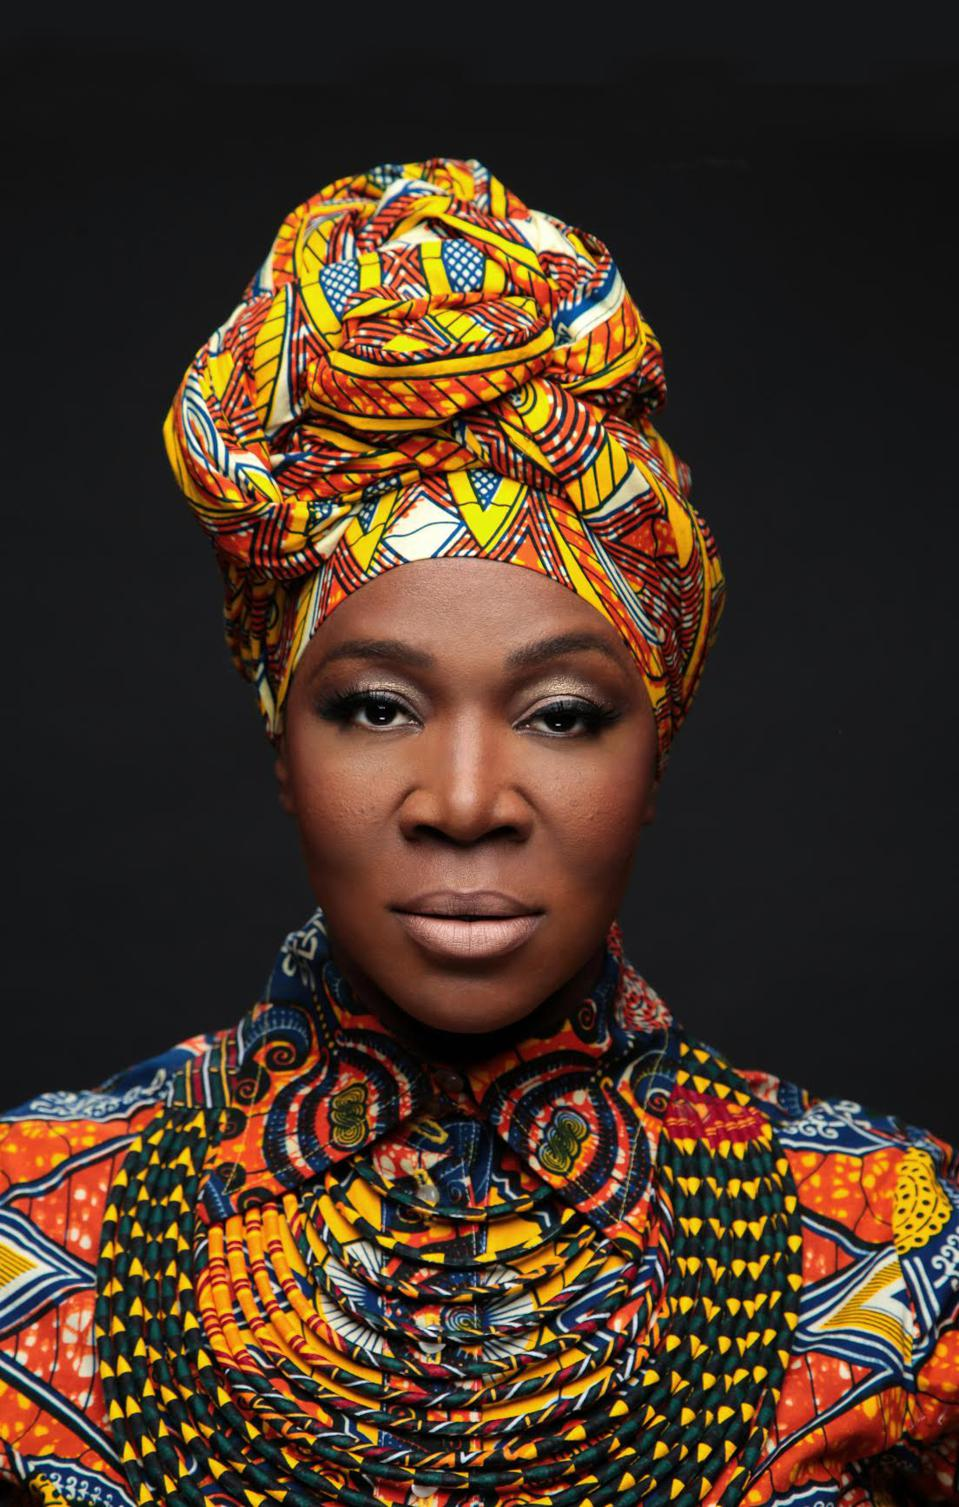 ″I've outgrown the ability to squash myself down or diminish my real nature in my public life,″ says India.Arie, multi-Grammy Award winner and singer/songwriter.